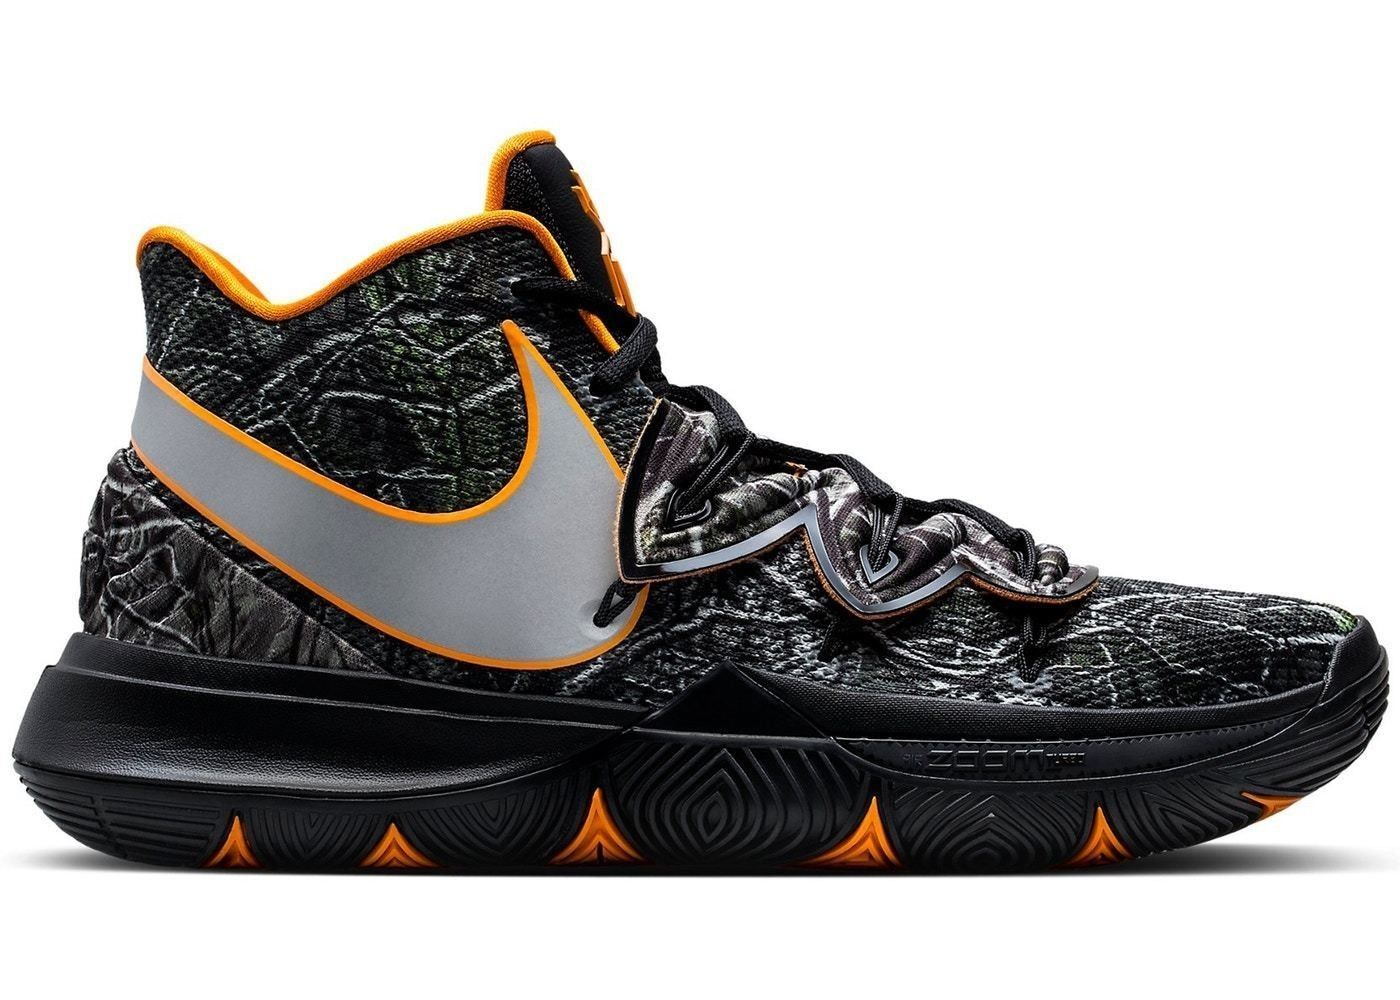 7dc5a990c672 Details about Nike Kyrie Irving 5 V Taco PE Black Orange AO2918-902 ...